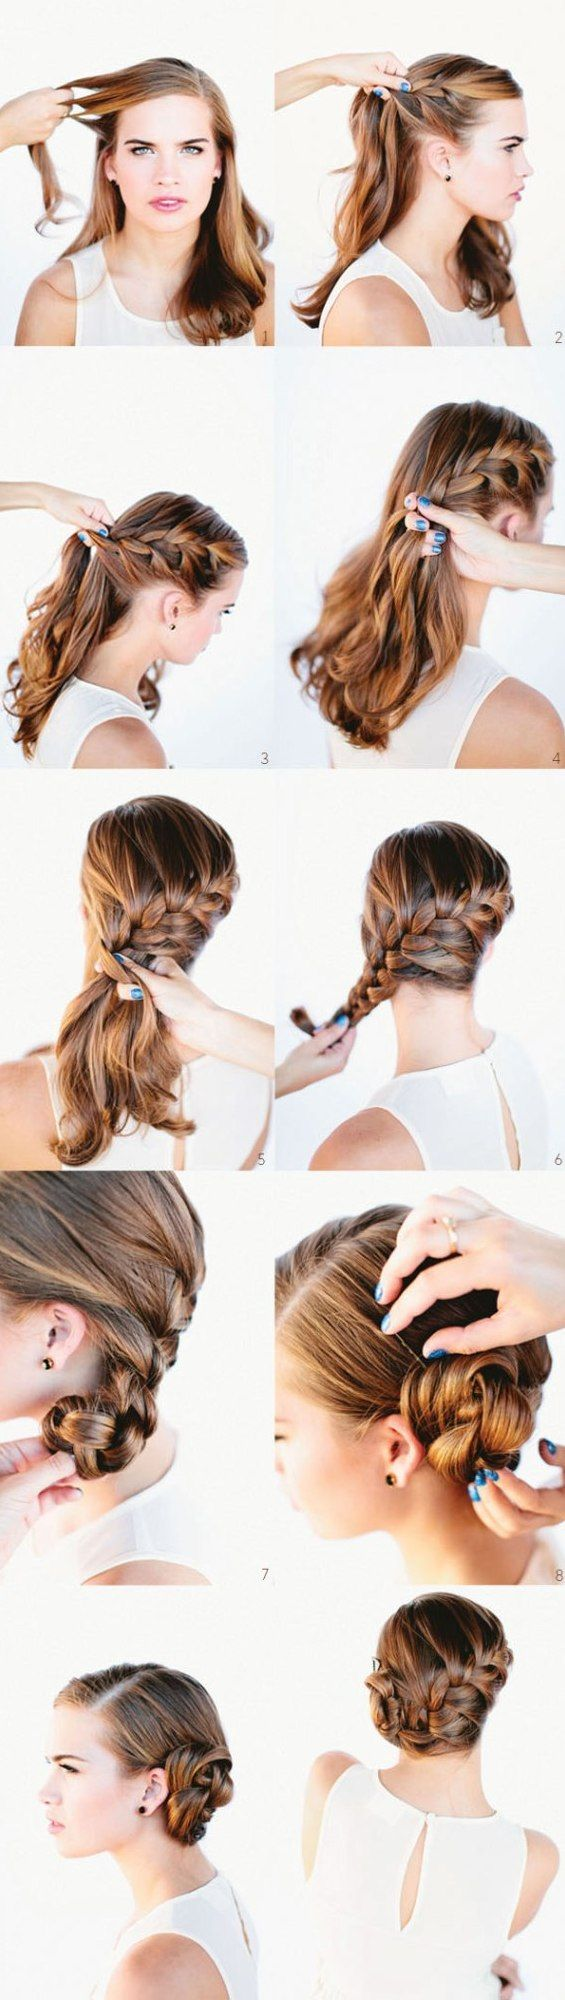 #Fun and simple everyday #hairstyles http://www.kafepauza.mk/zivot/10-interesni-i-brzi-frizuri-koi-mozhe-da-gi-napravite-sami/